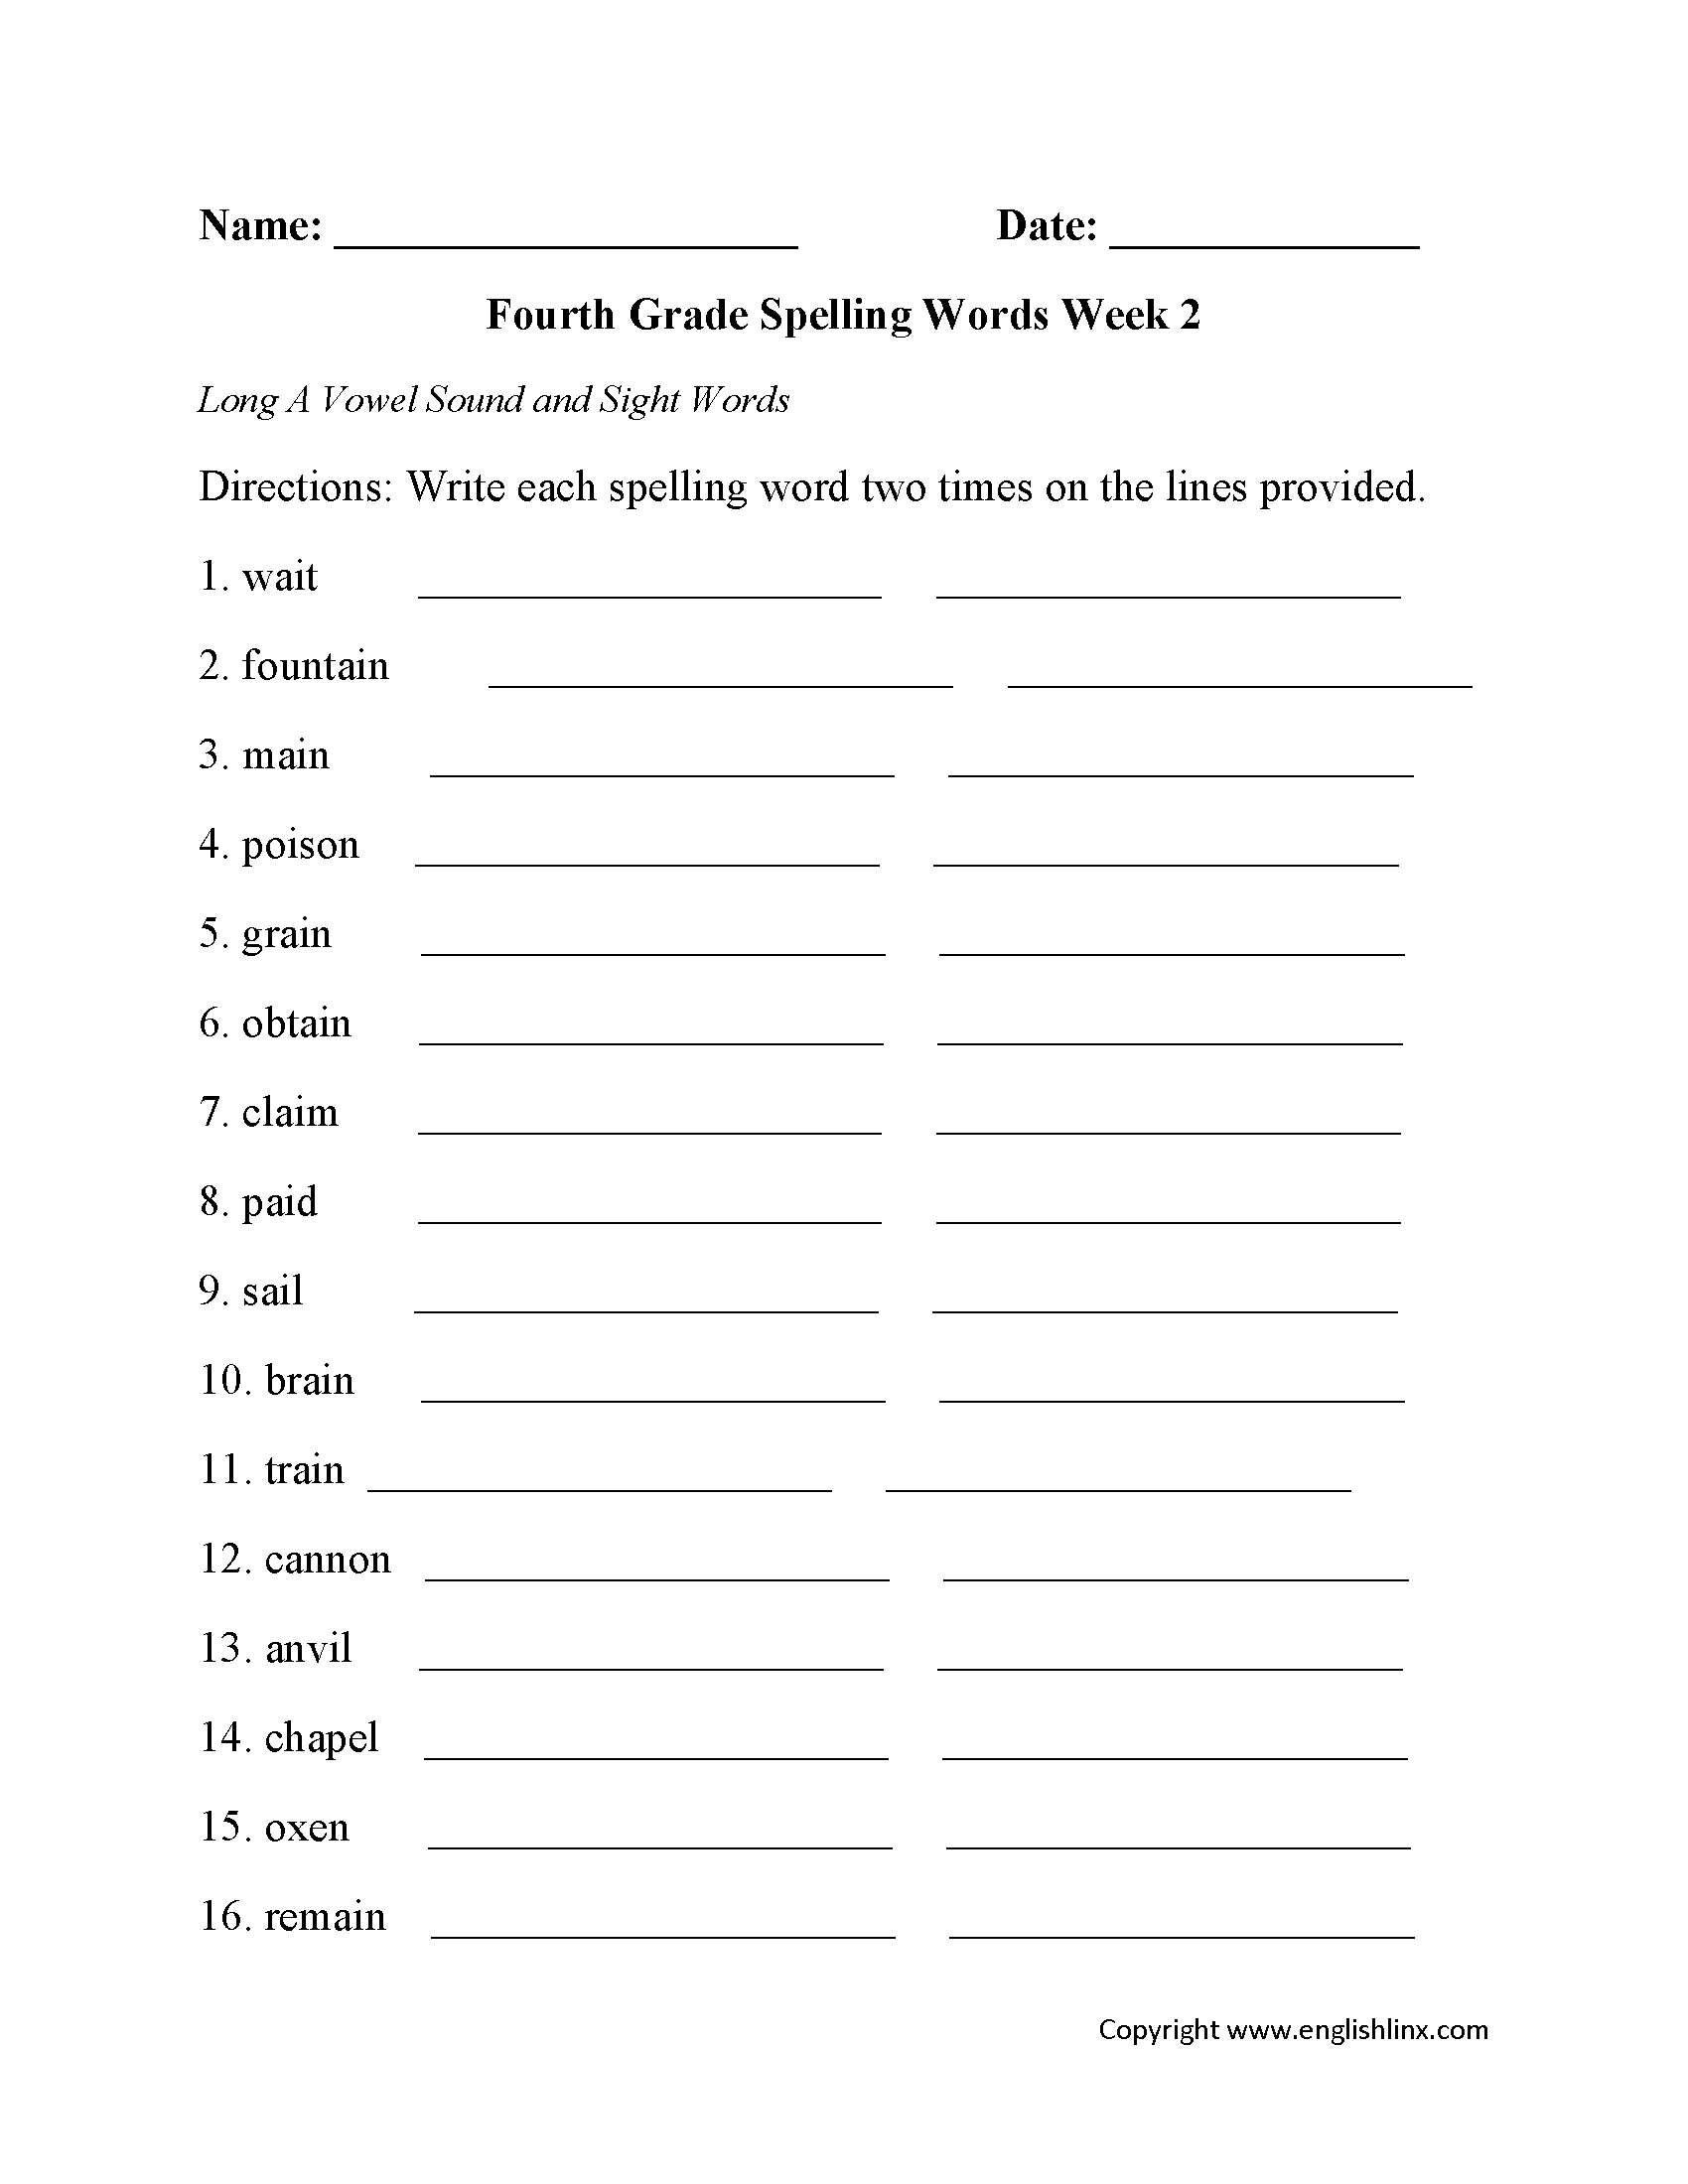 Week 2 Long A Vowel Fourth Grade Spelling Worksheets